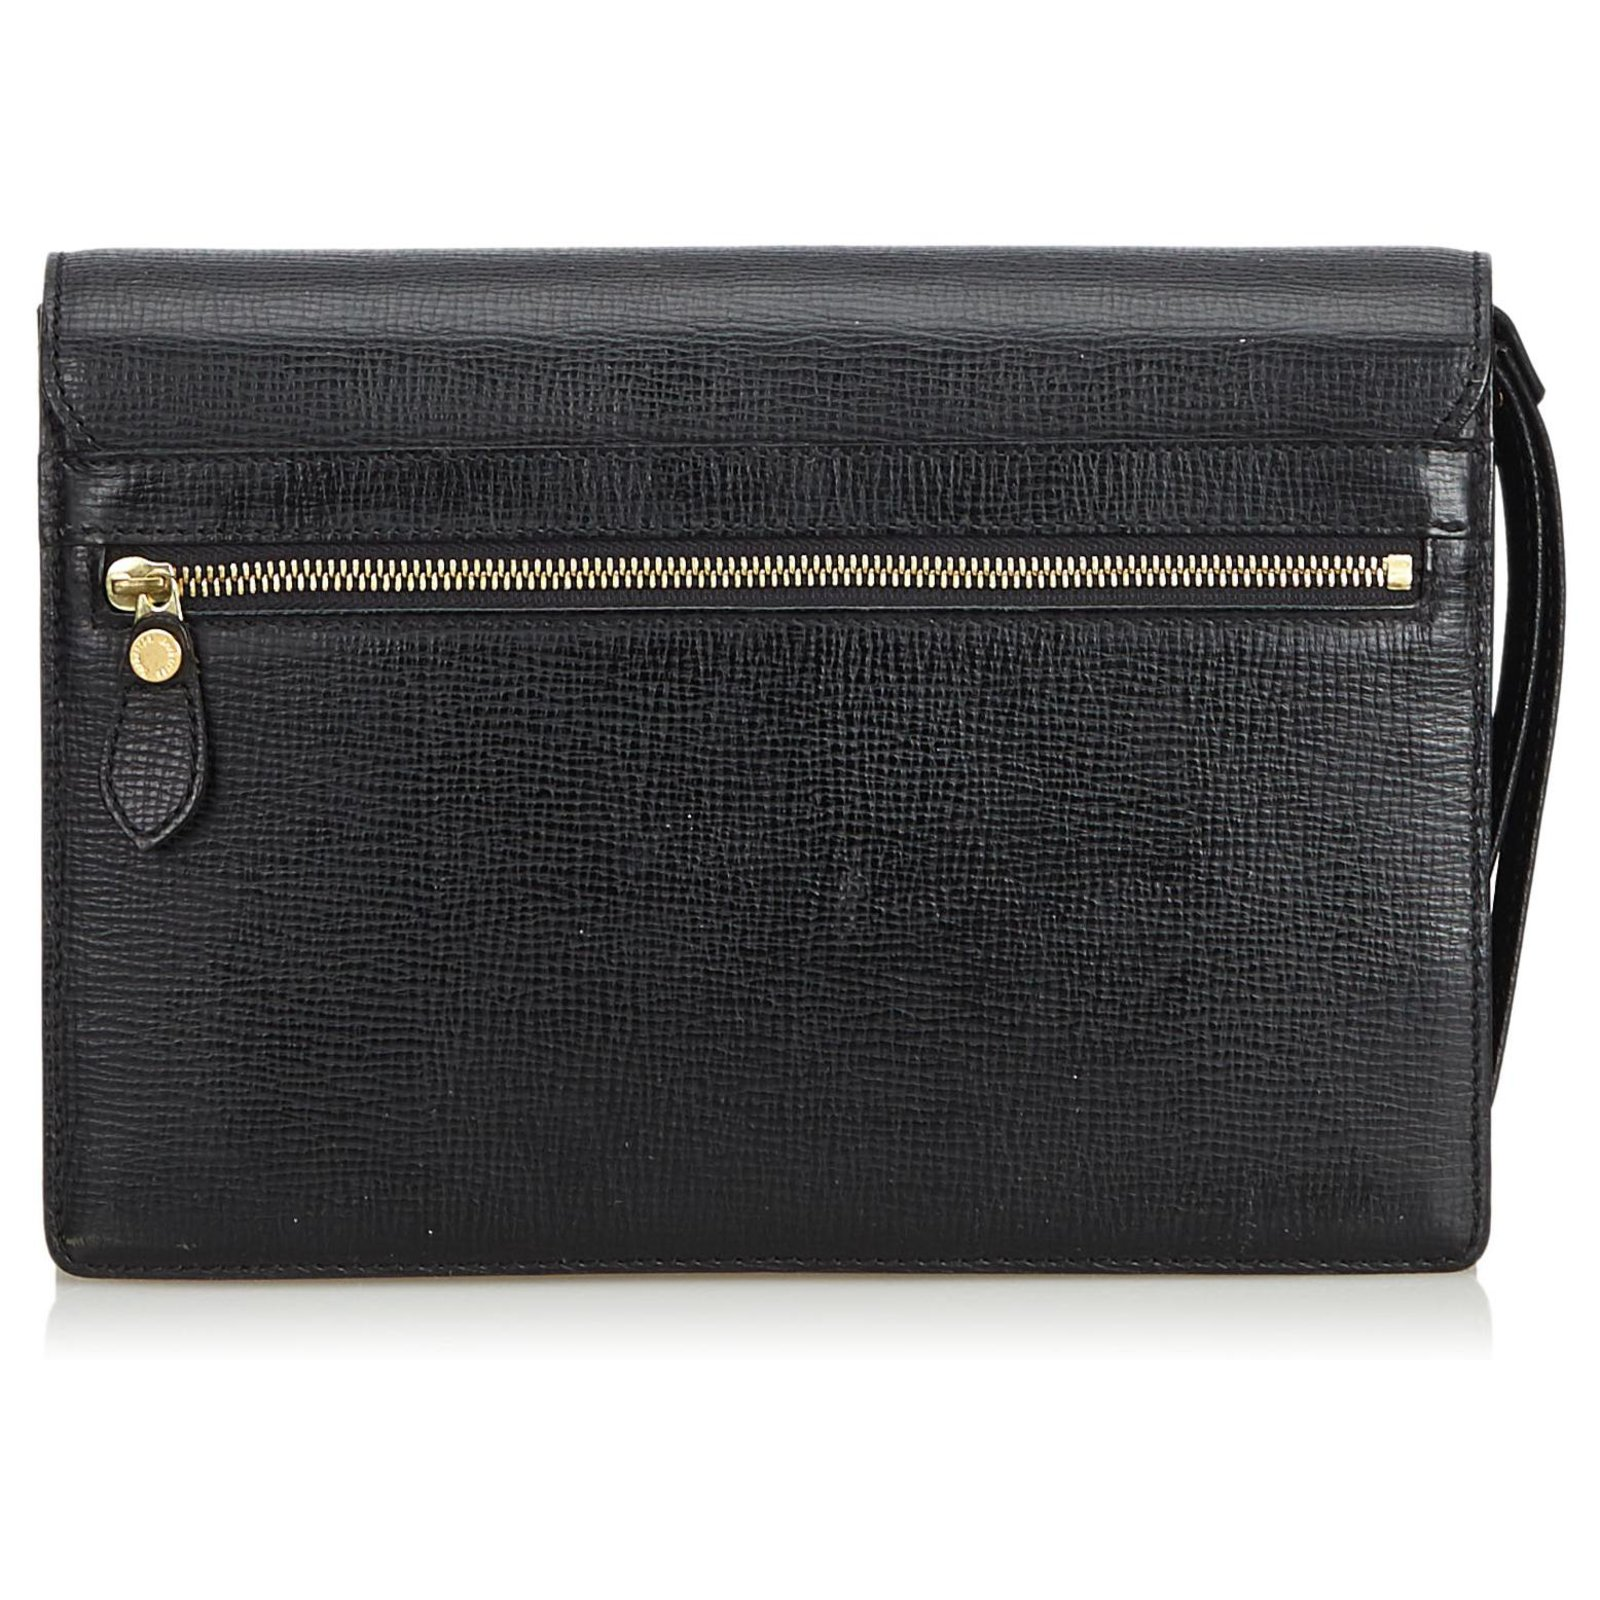 d624f82a804 Burberry Burberry Black Leather Clutch Bag Clutch bags Leather,Other Black  ref.128054 - Joli Closet